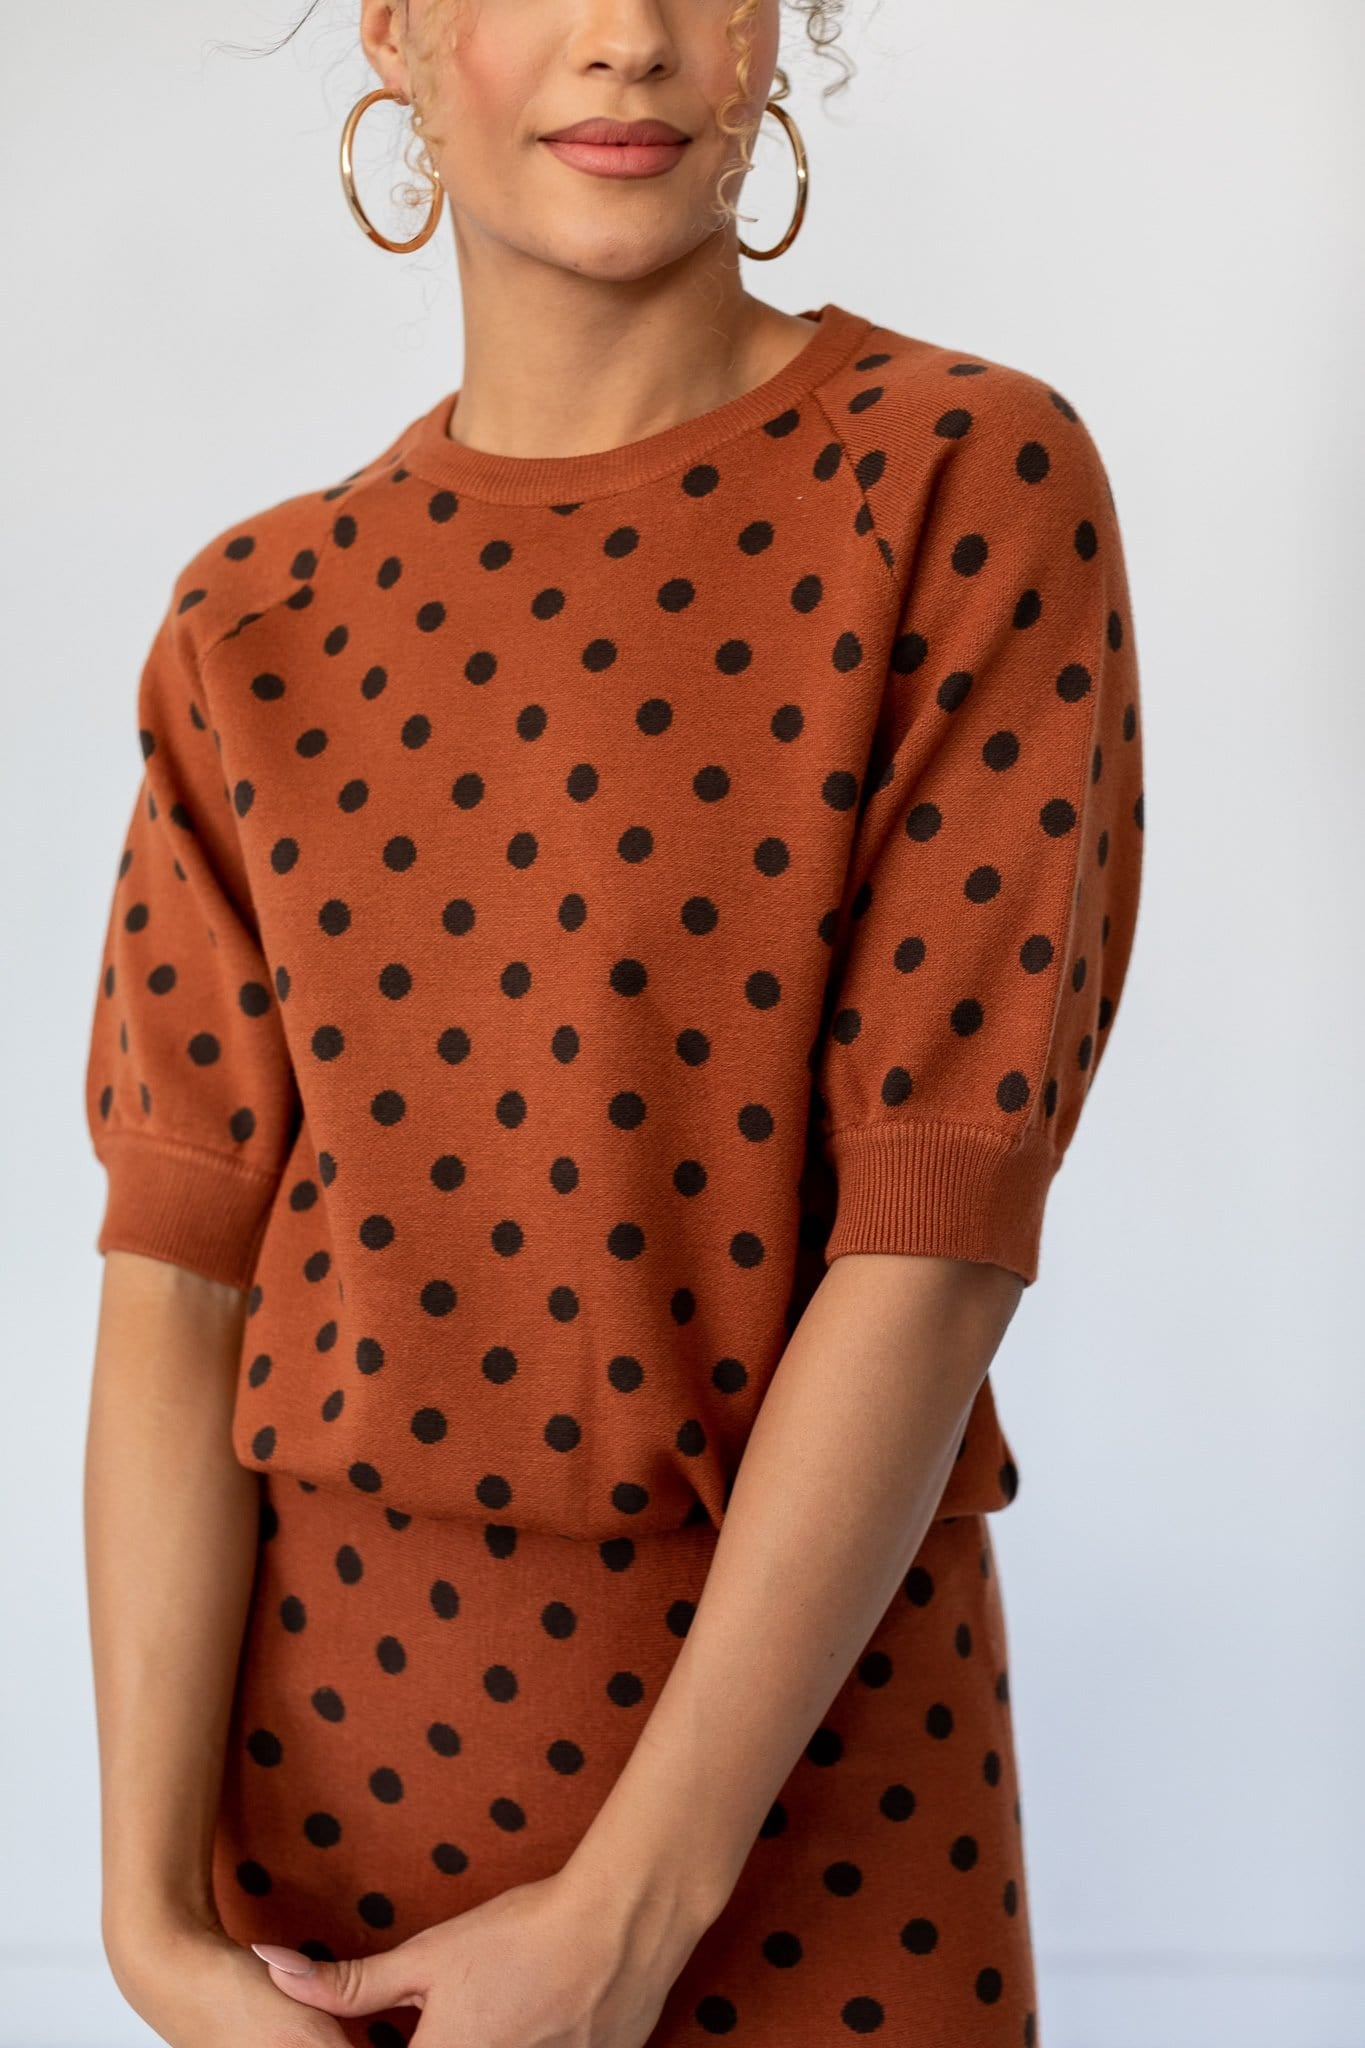 The Everton Dotted Sweater Top in Caramel